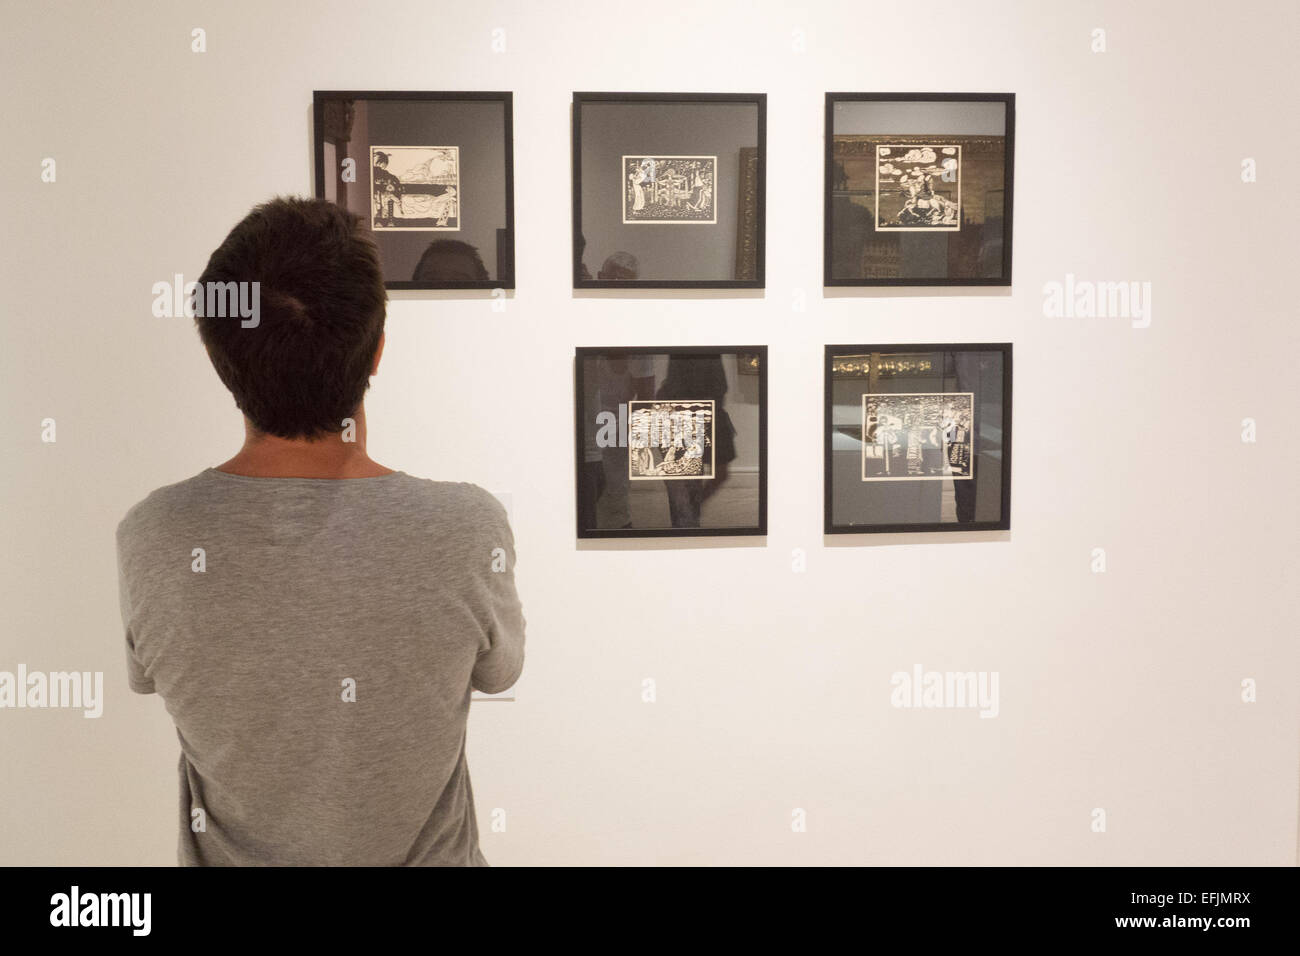 Rio De Janeiro, Brazil. 5th Feb, 2015. A man looks at the exhibited paintings by Wassily Kandinsky in Rio de Janeiro, - Stock Image